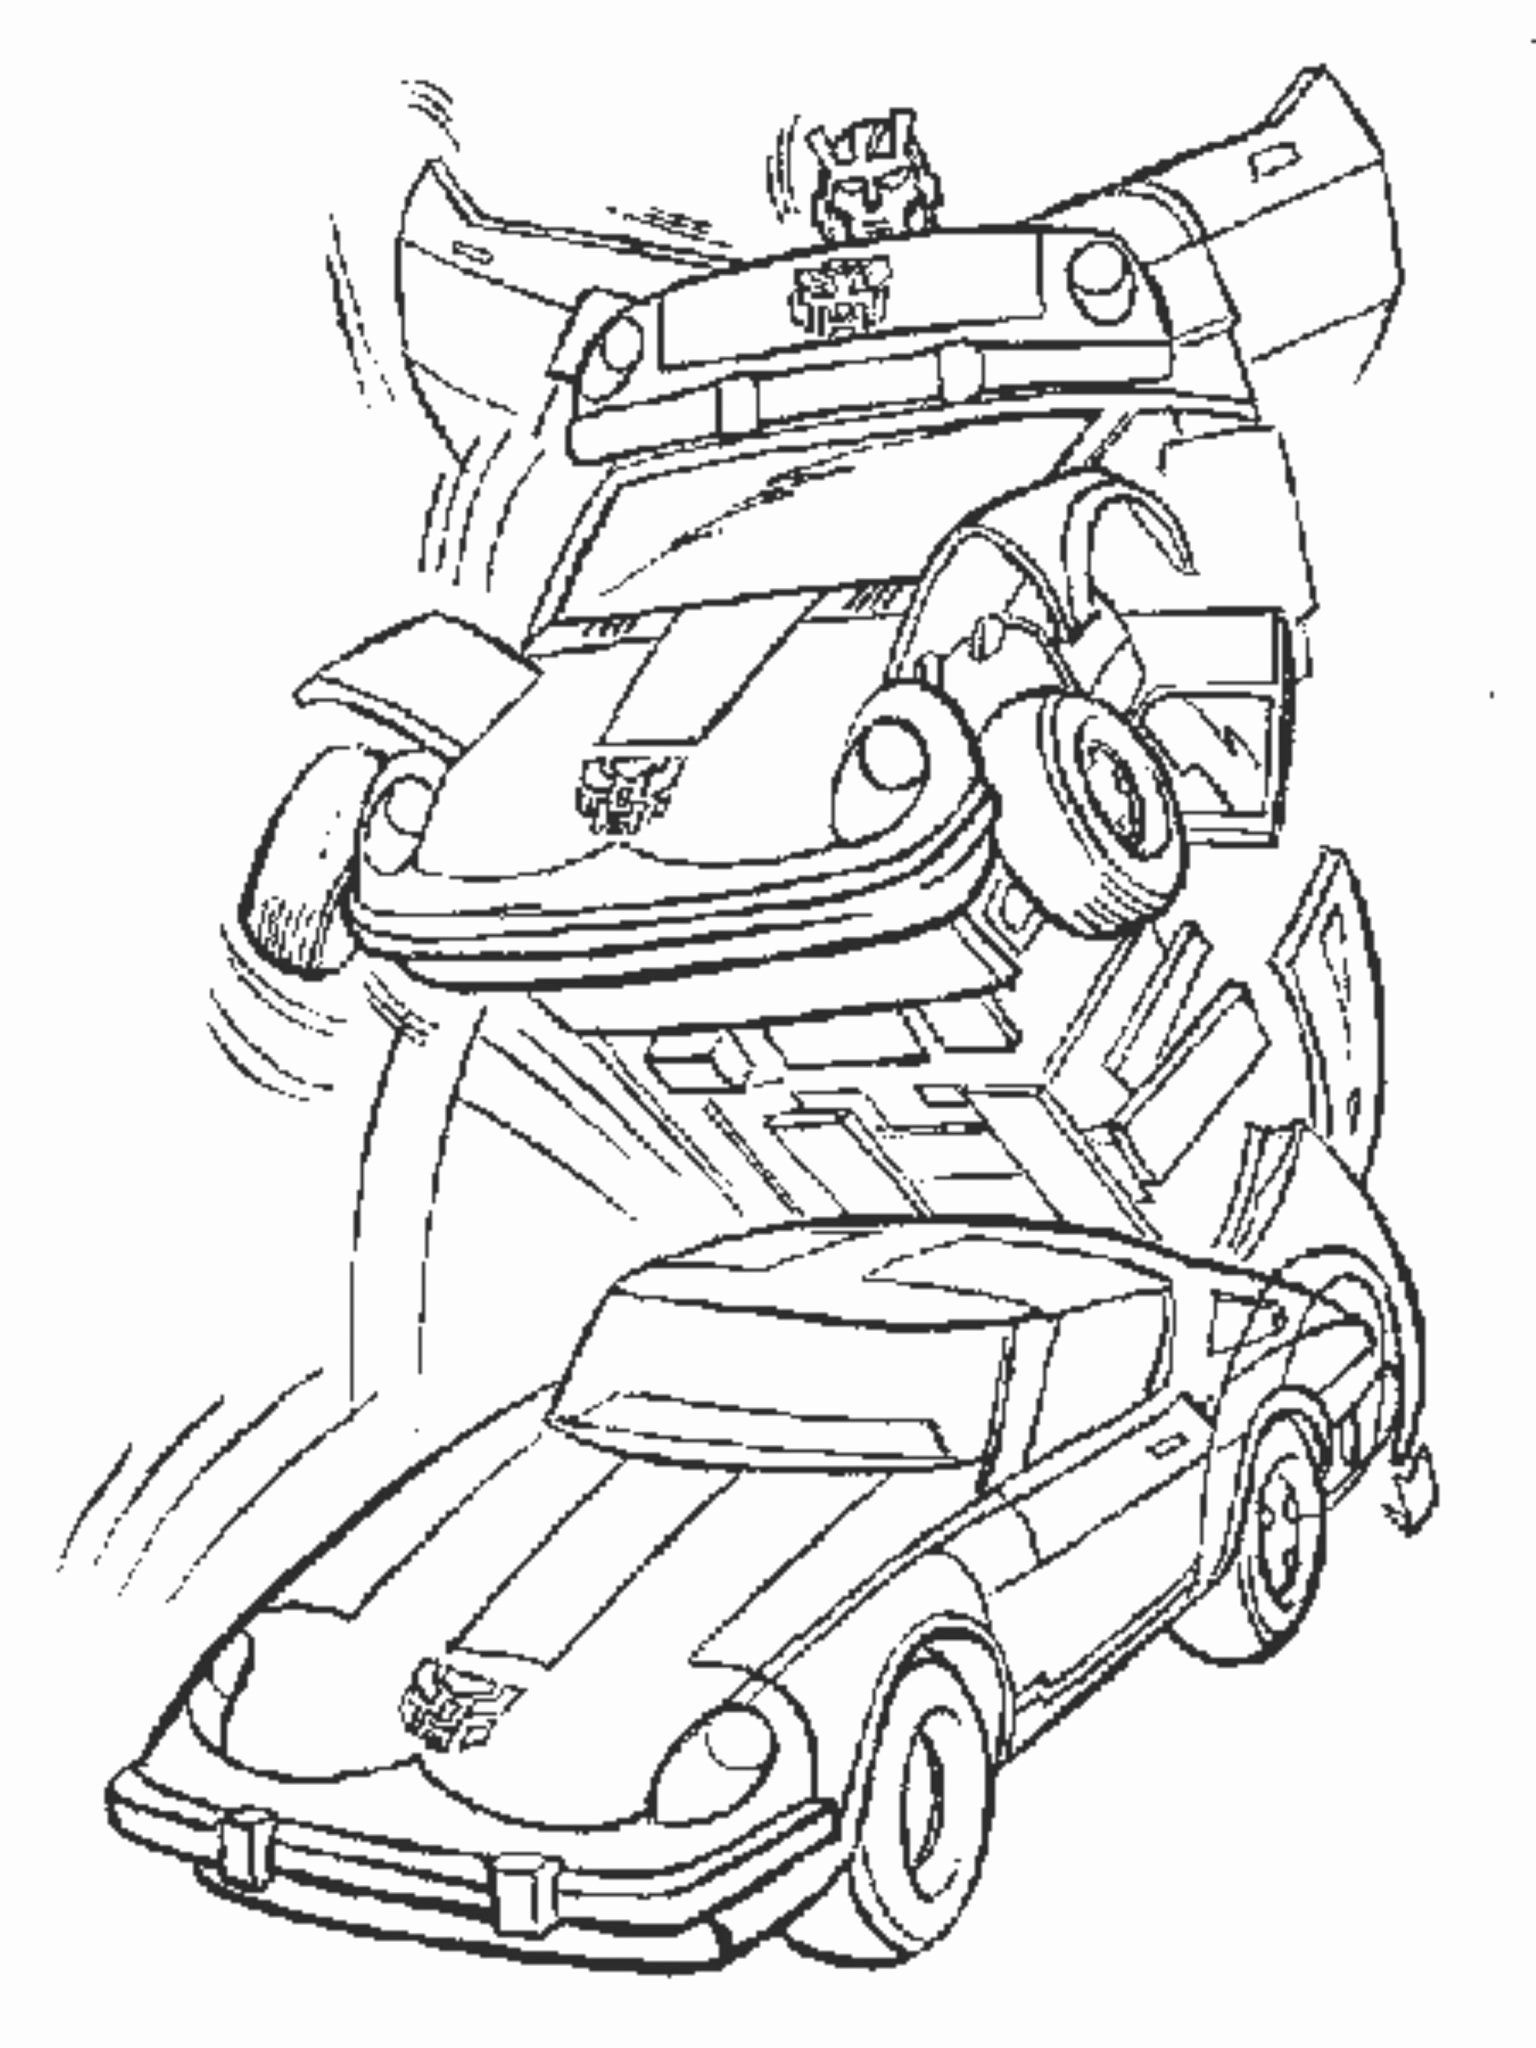 28 Bumble Bee Coloring Page In 2020 Transformers Coloring Pages